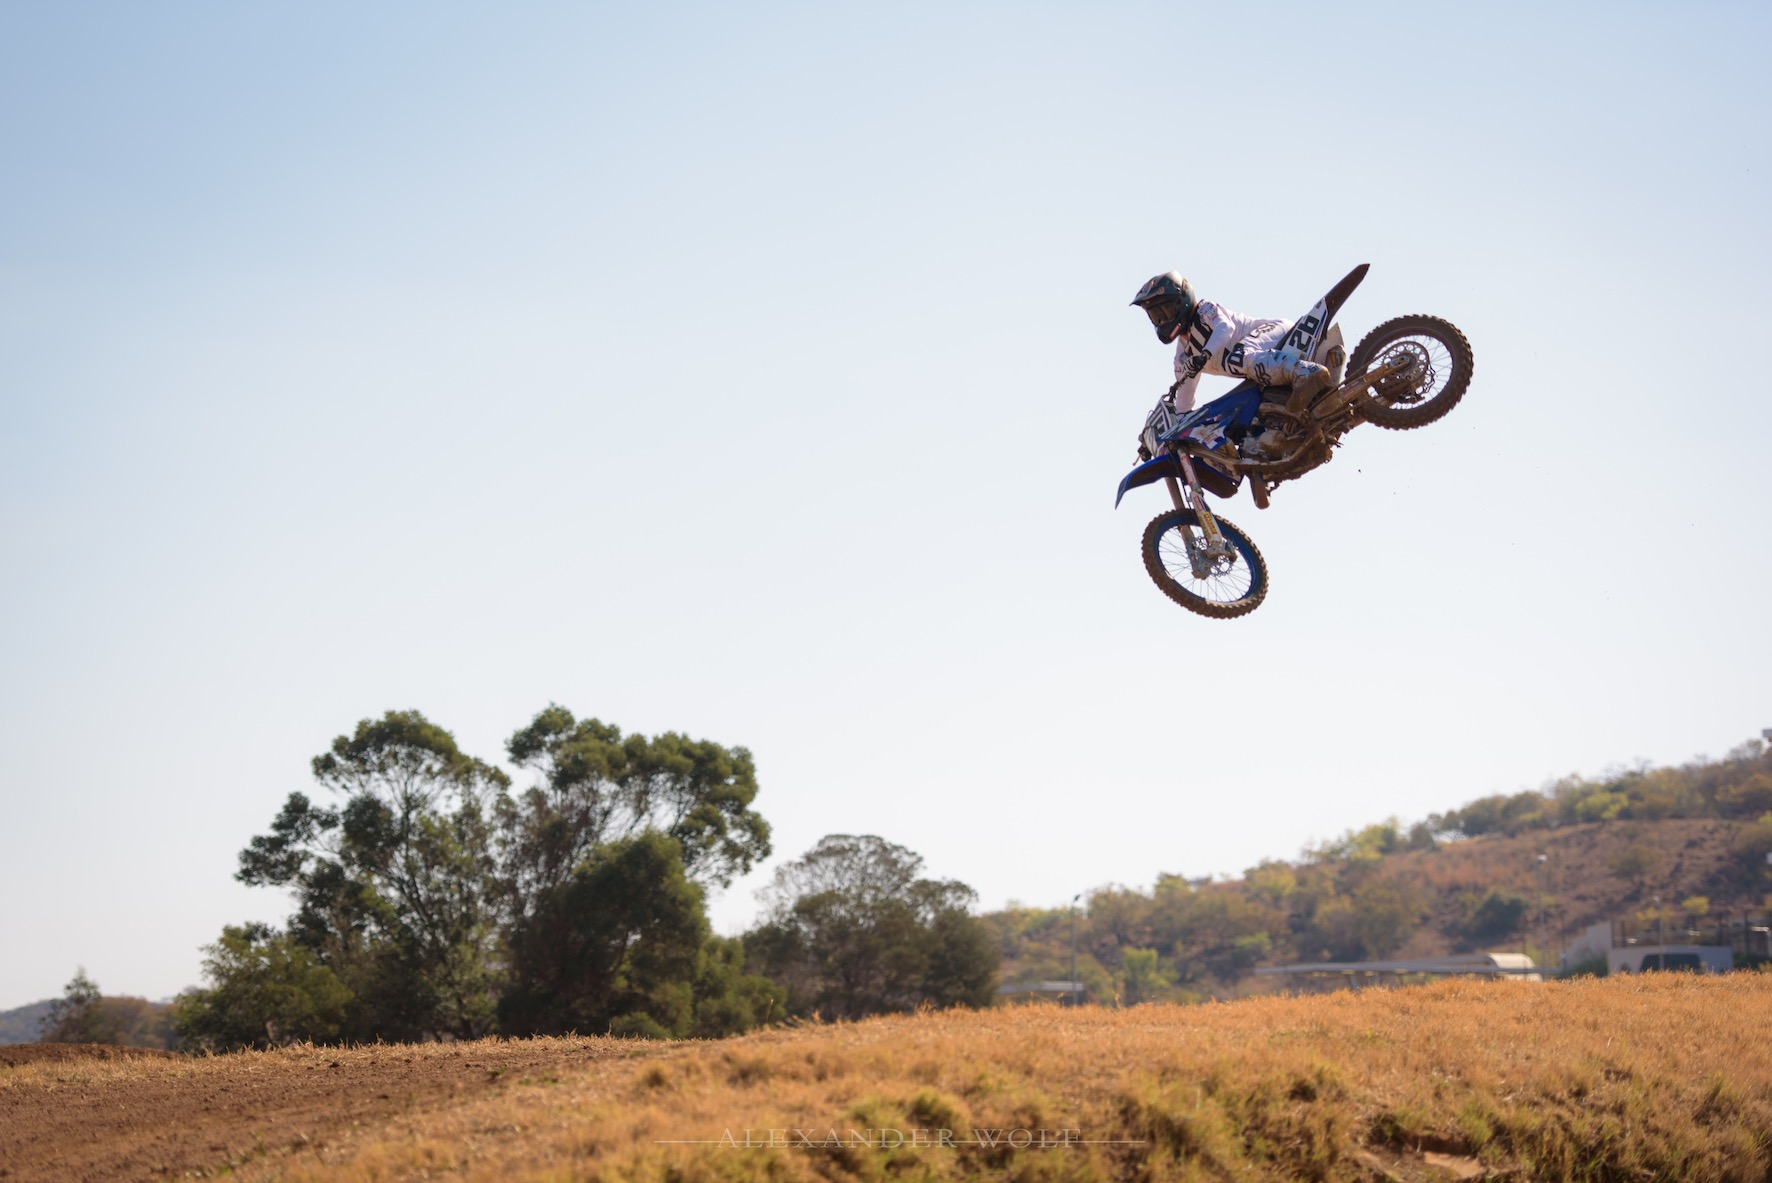 Miguel de Waal training for the upcoming MX Nationals